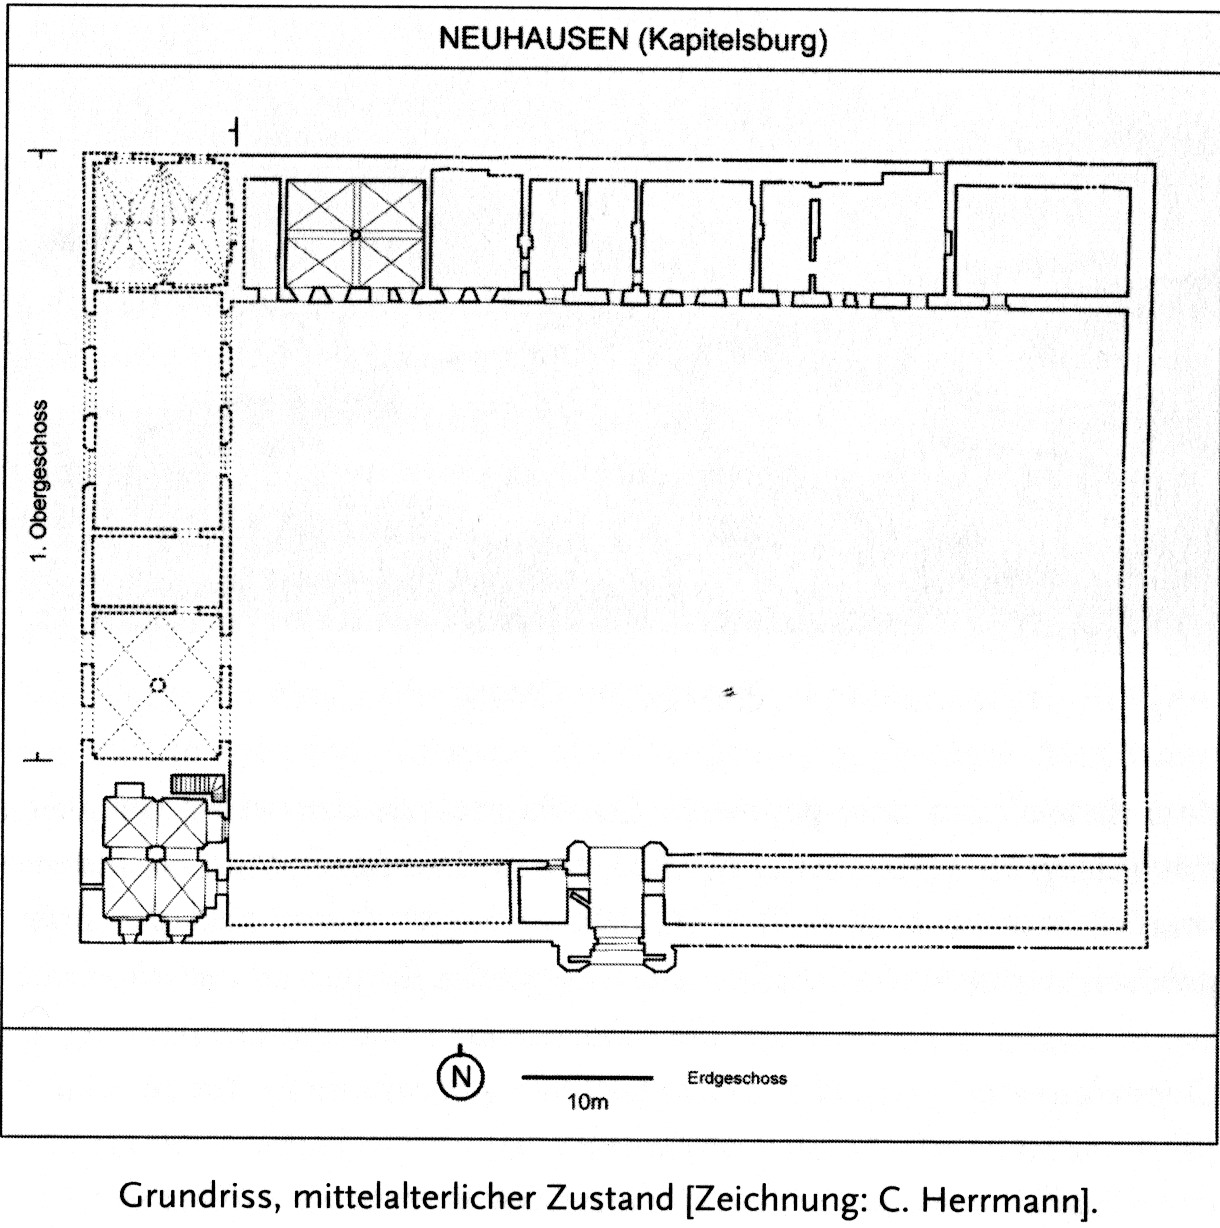 Neuhausen - plan.jpg